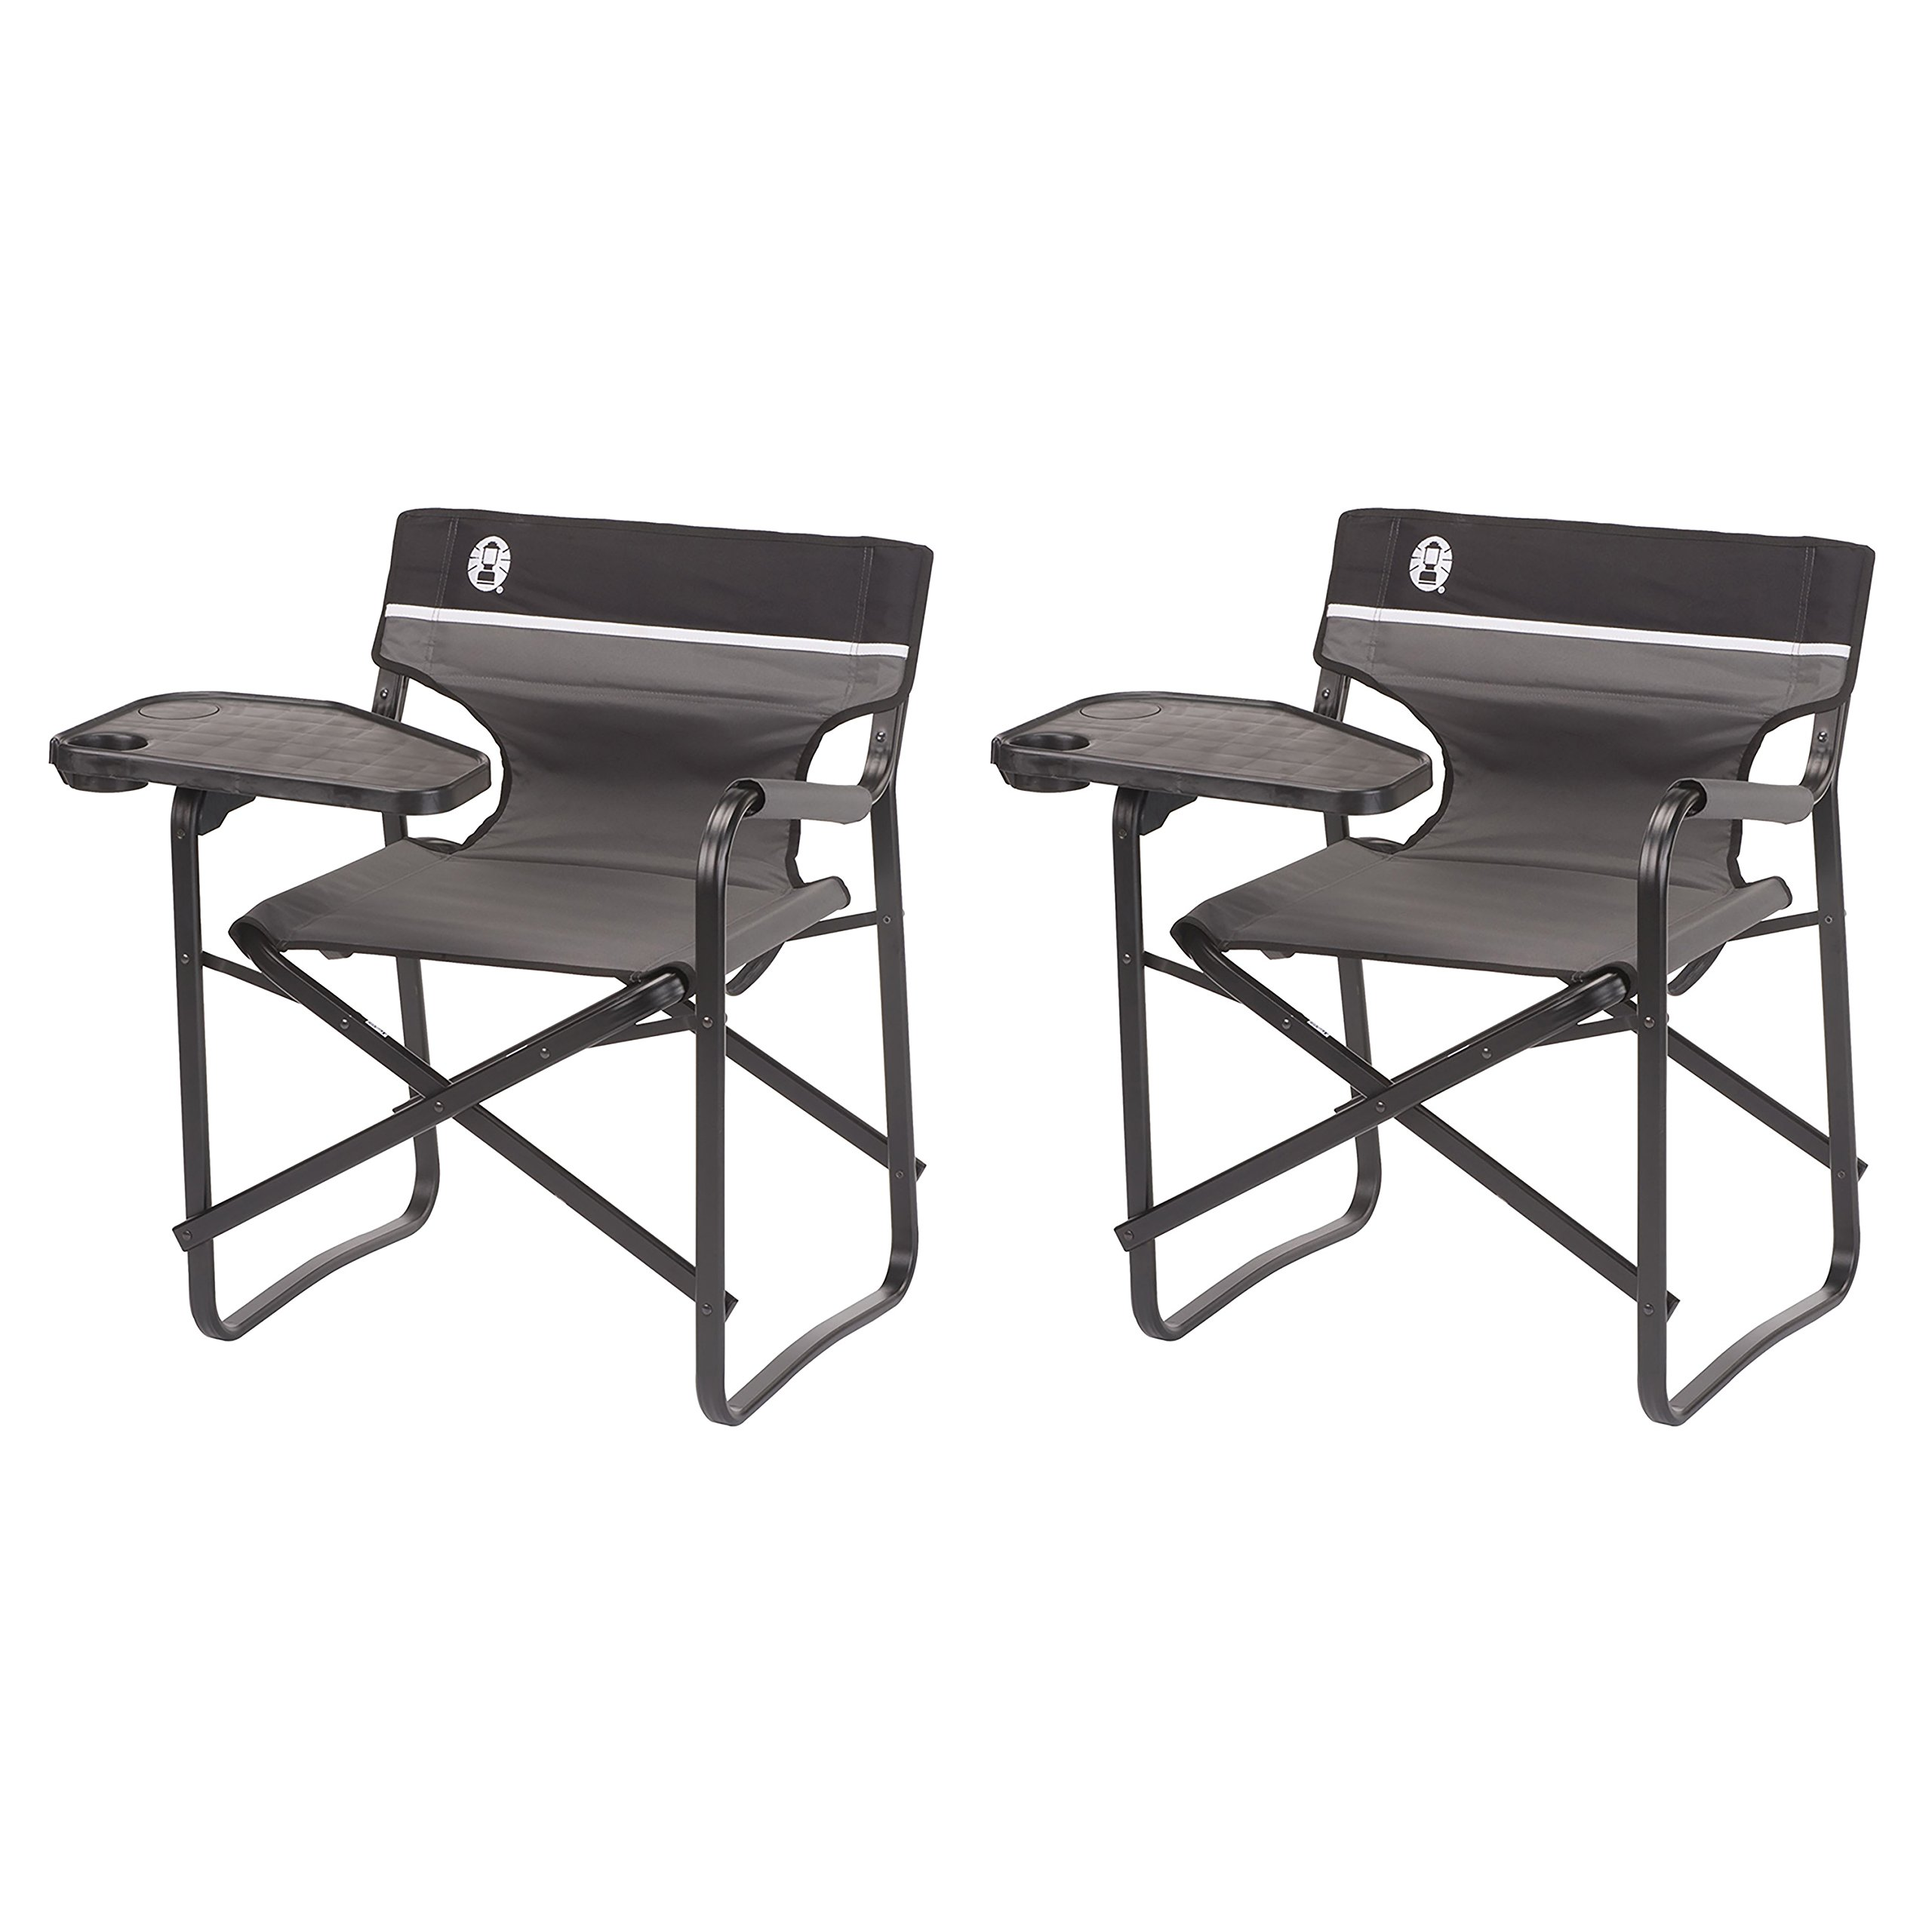 Coleman Aluminum Chairs + Swivel Table and Drink Holder, 2-Pack | 2 x 2000020295